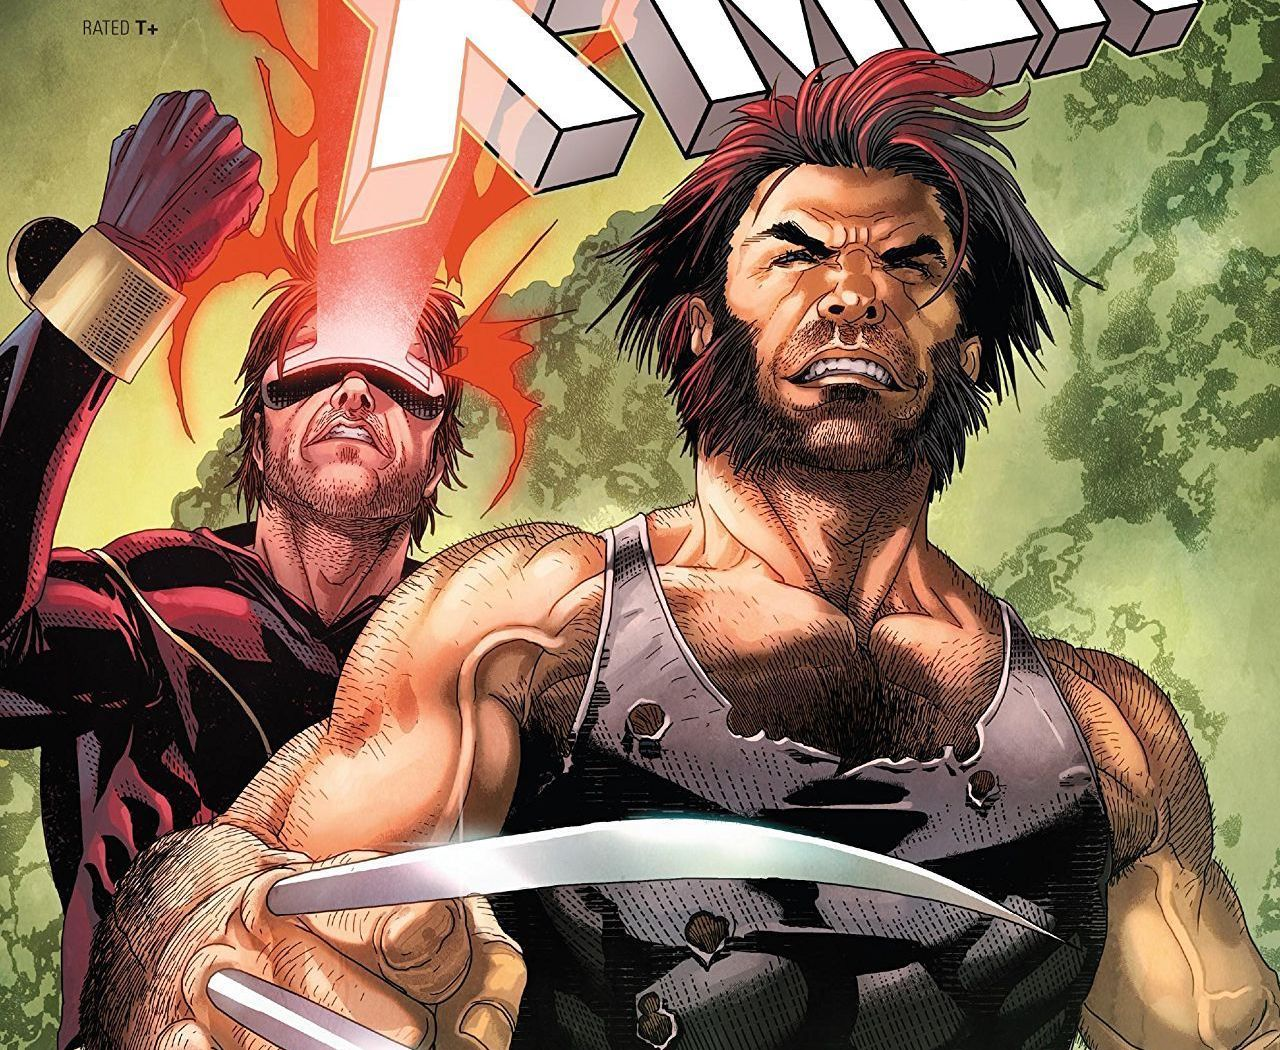 Uncanny X-Men: Wolverine and Cyclops Vol. 1 Review